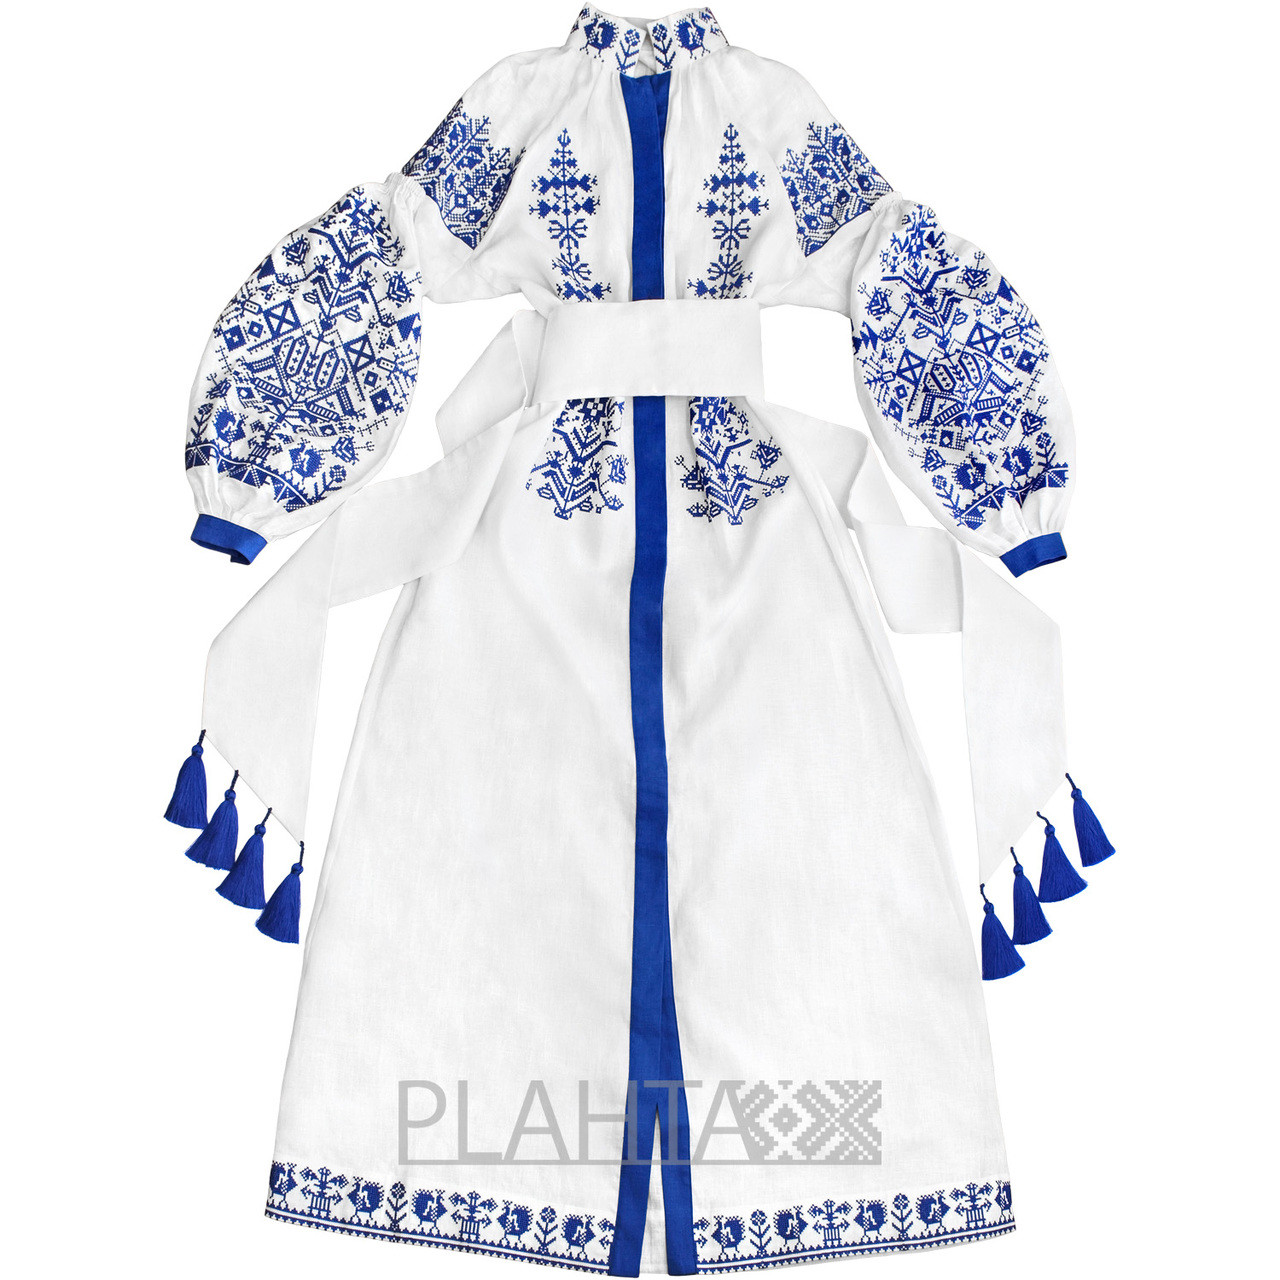 Long White Dress With Embroidery King Bird Plahta